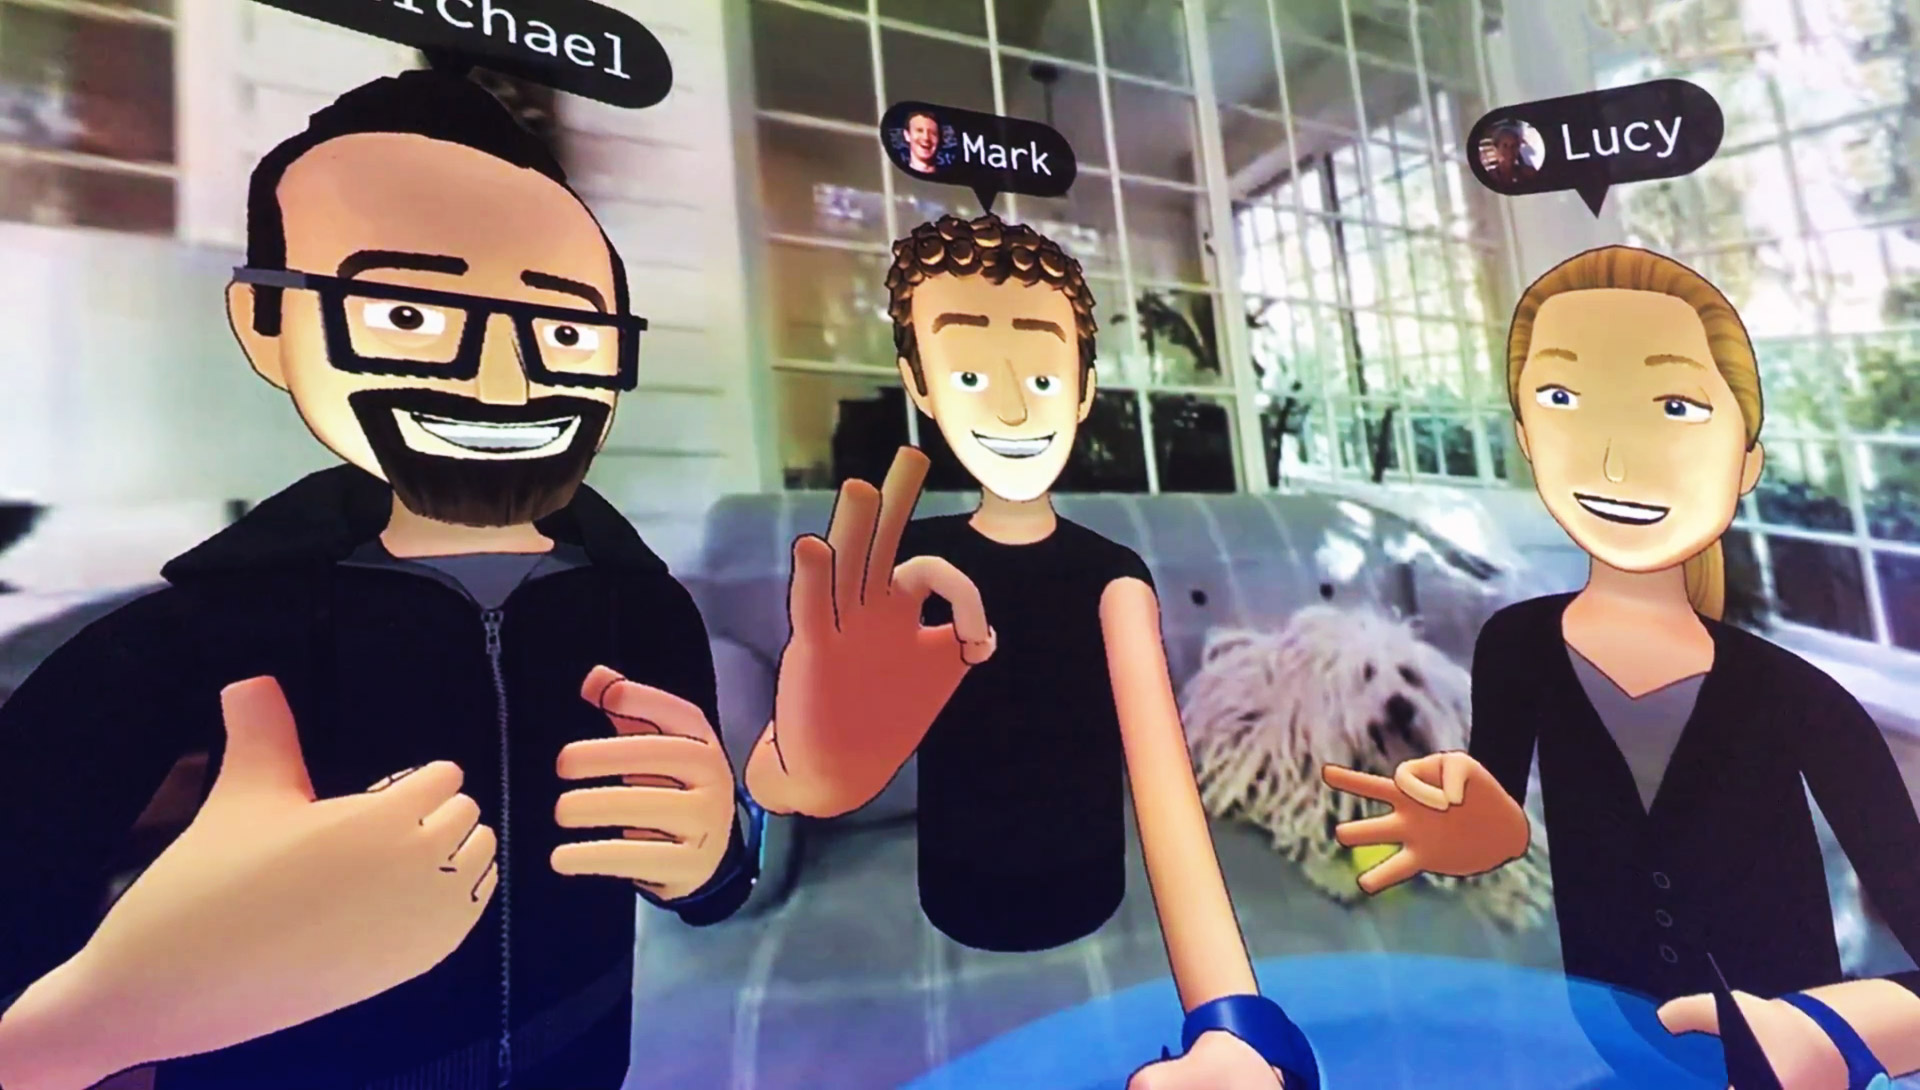 facebook details social vr avatar experiments and lessons